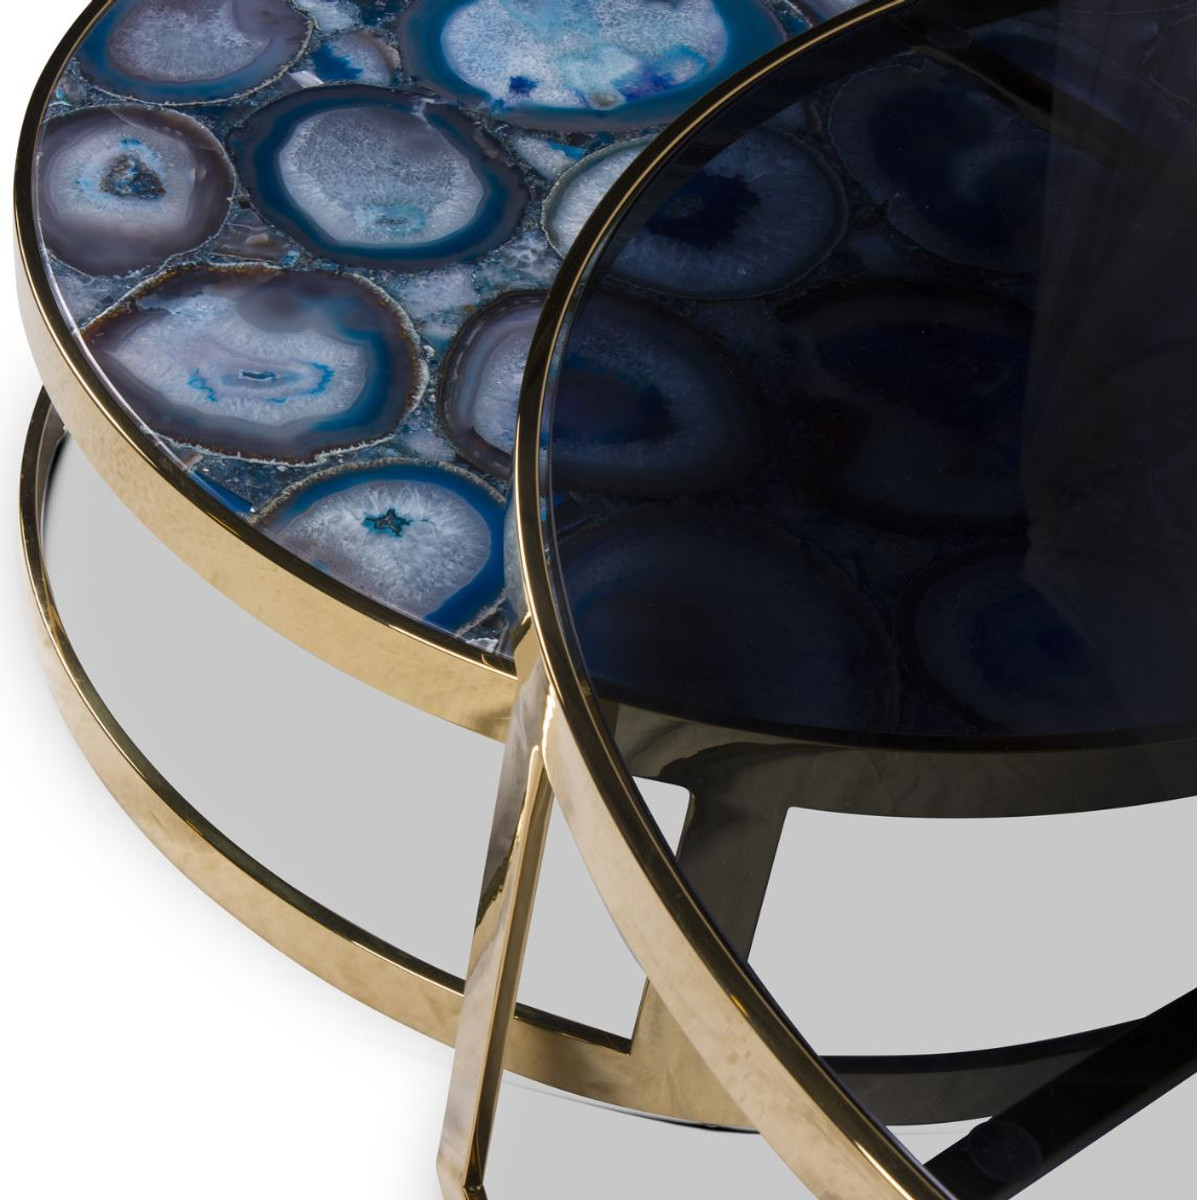 Wohnzimmertische Oval Casa Padrino Luxury Coffee Table Set Blue / Gold - 2 Round Living Room Tables With Agate Gemstone And Glass Top - Luxury Quality - Luxury Living Room Furniture |